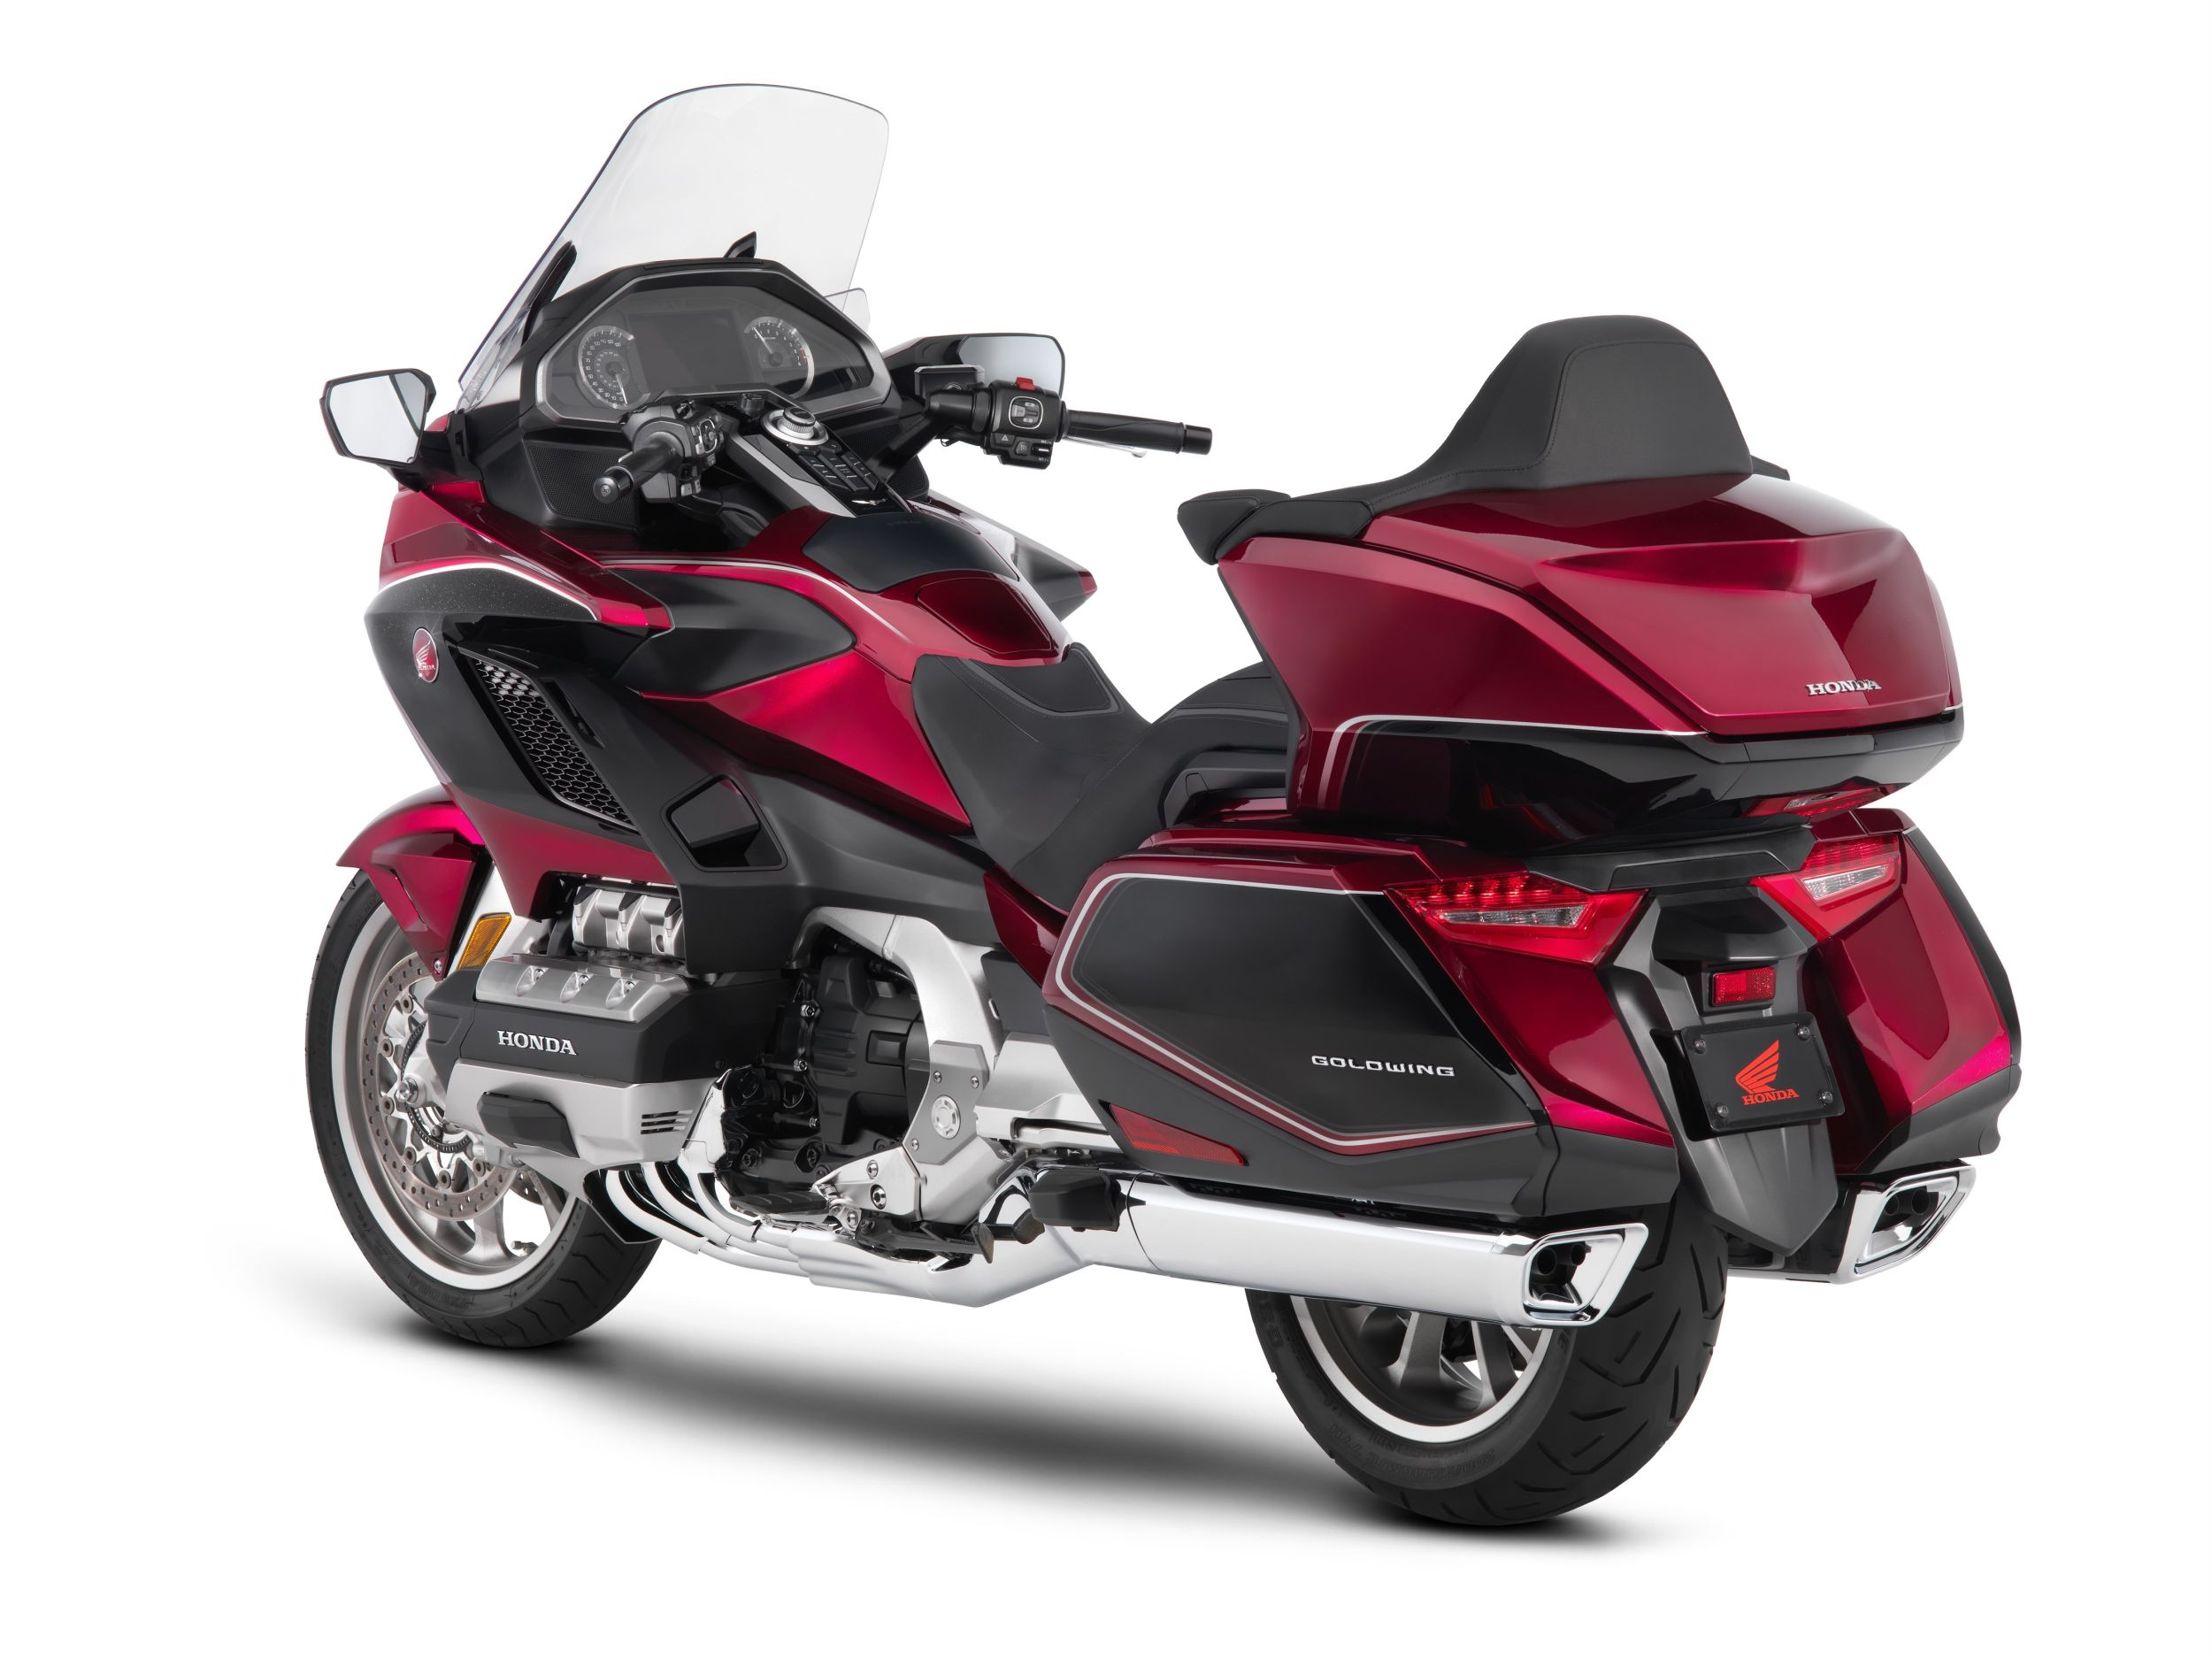 motorrad occasion honda gl 1800 goldwing tour kaufen. Black Bedroom Furniture Sets. Home Design Ideas